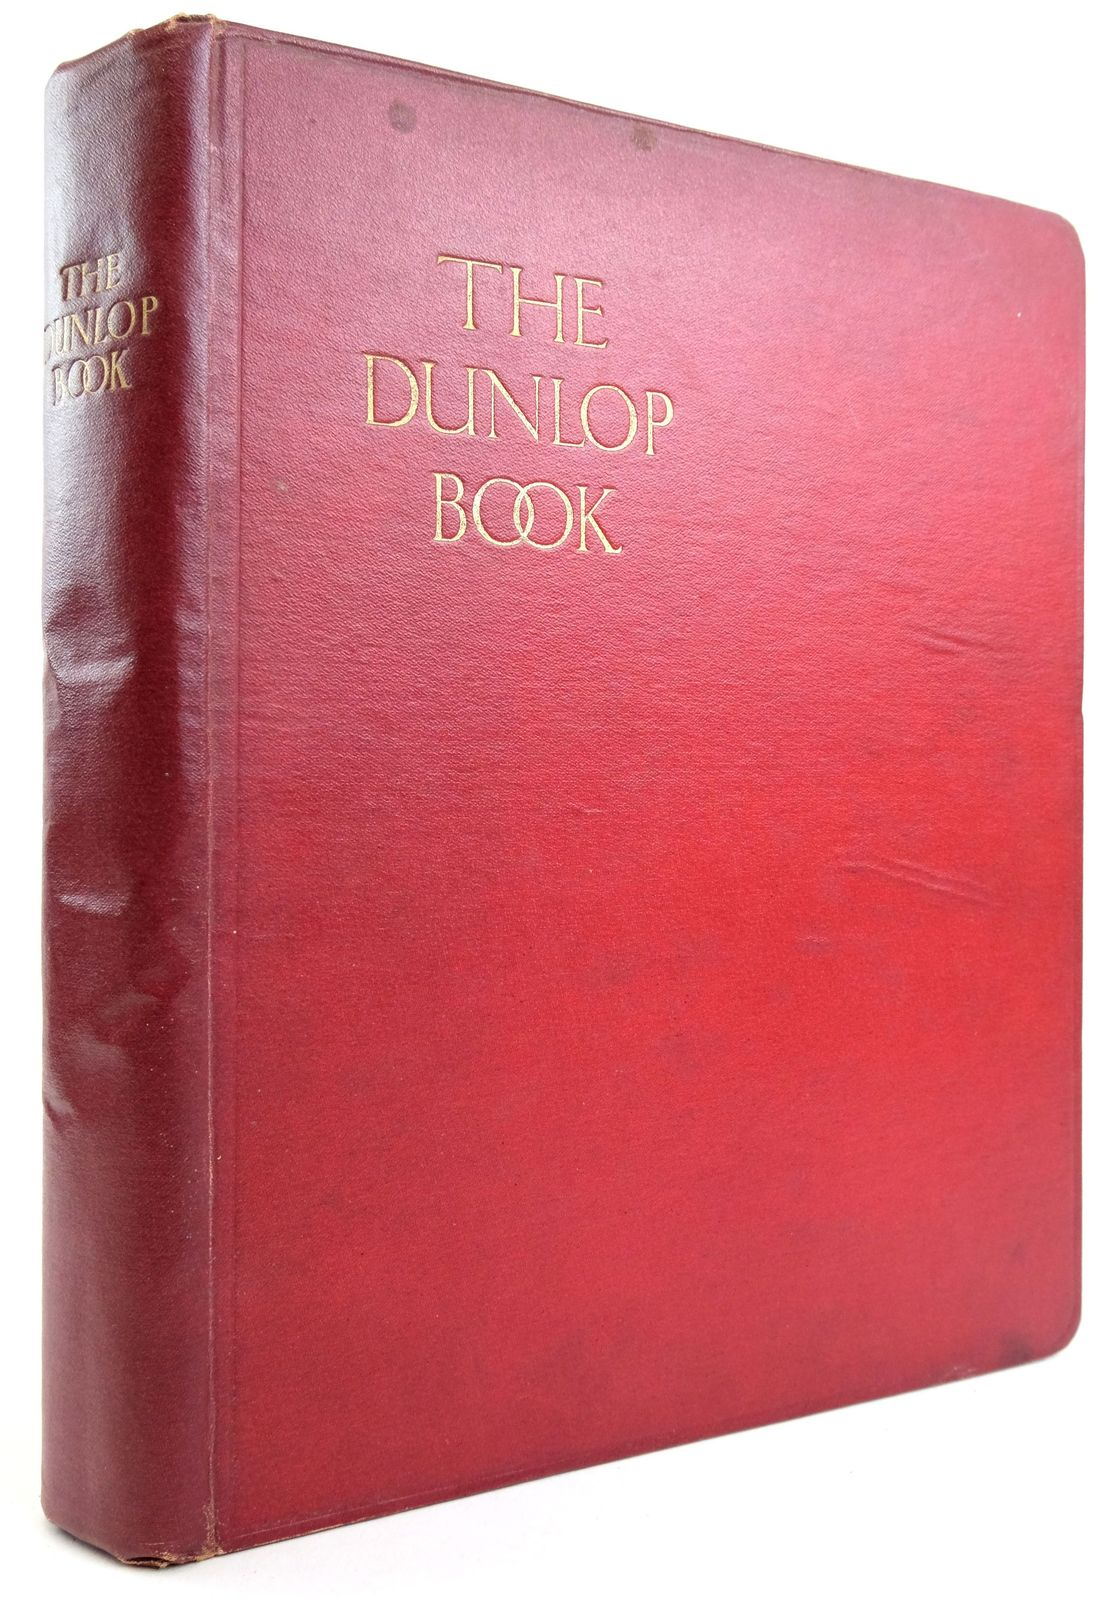 Photo of THE DUNLOP BOOK- Stock Number: 1819816